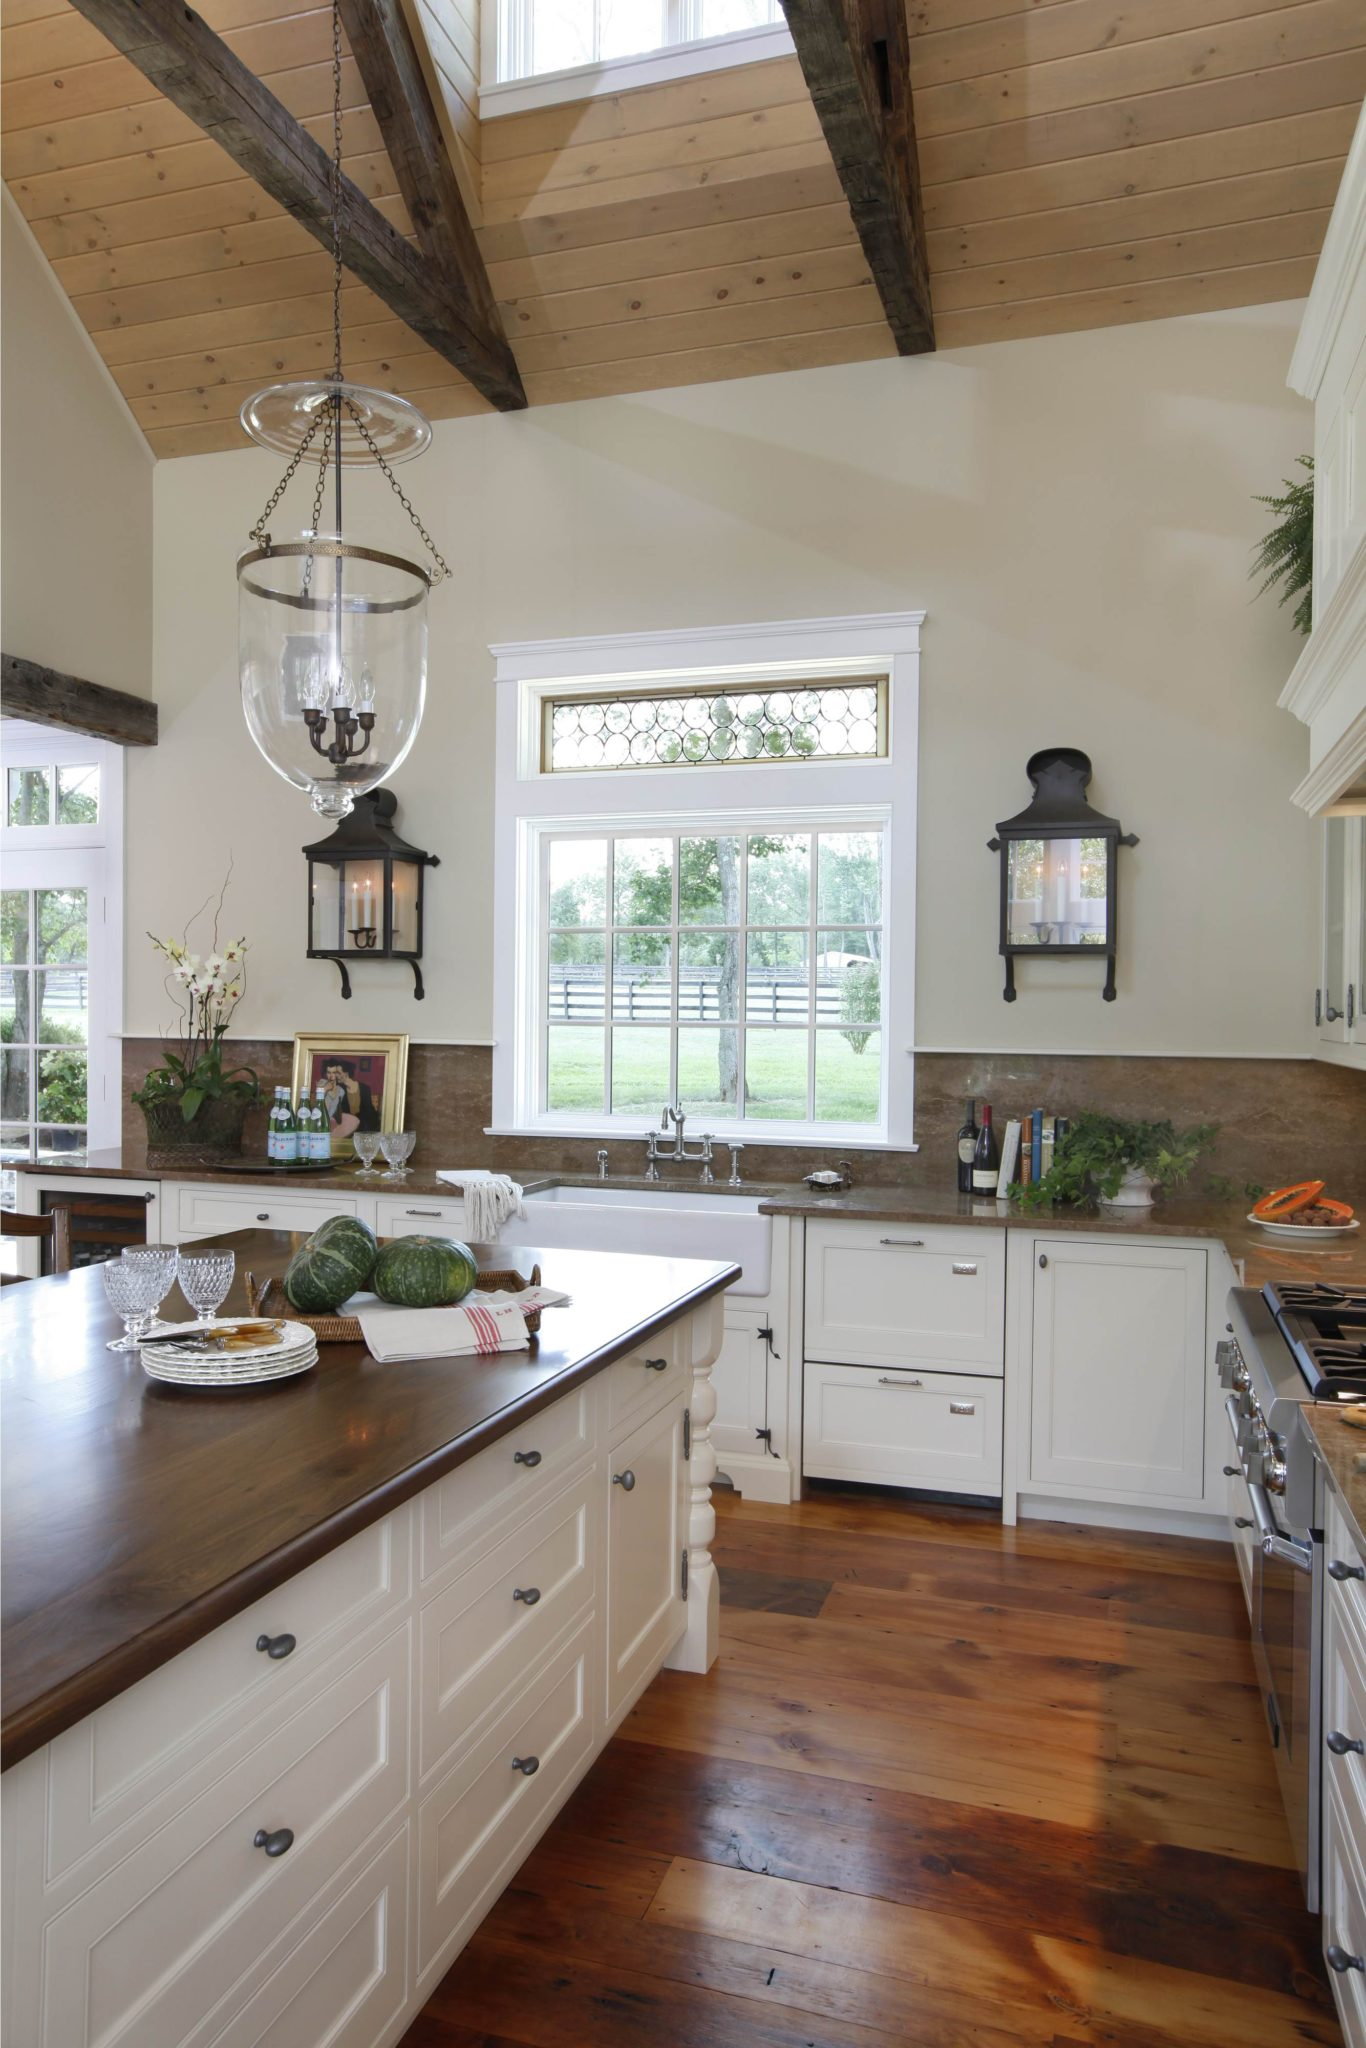 Trotter's Green kitchen with pine floor, beams, beadboard ceiling and bridge faucet by Deborah Leamann Interior Design